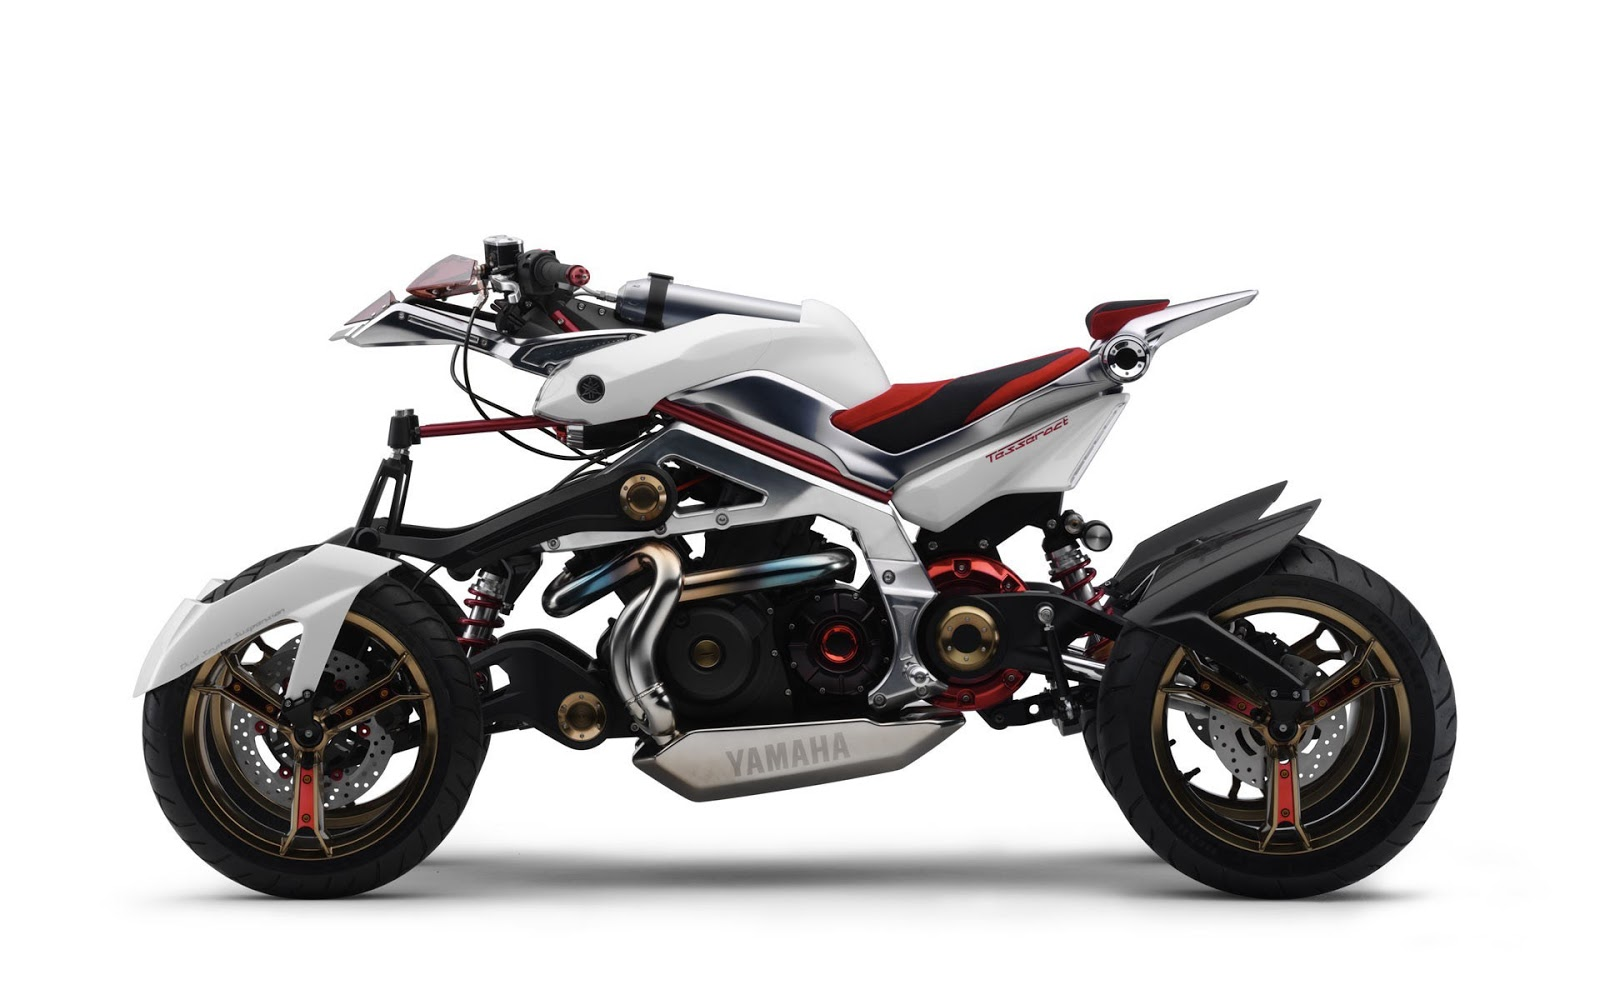 Indian sports bikes bmw sports bike yamaha sports bikes for Yamaha sport motorcycles